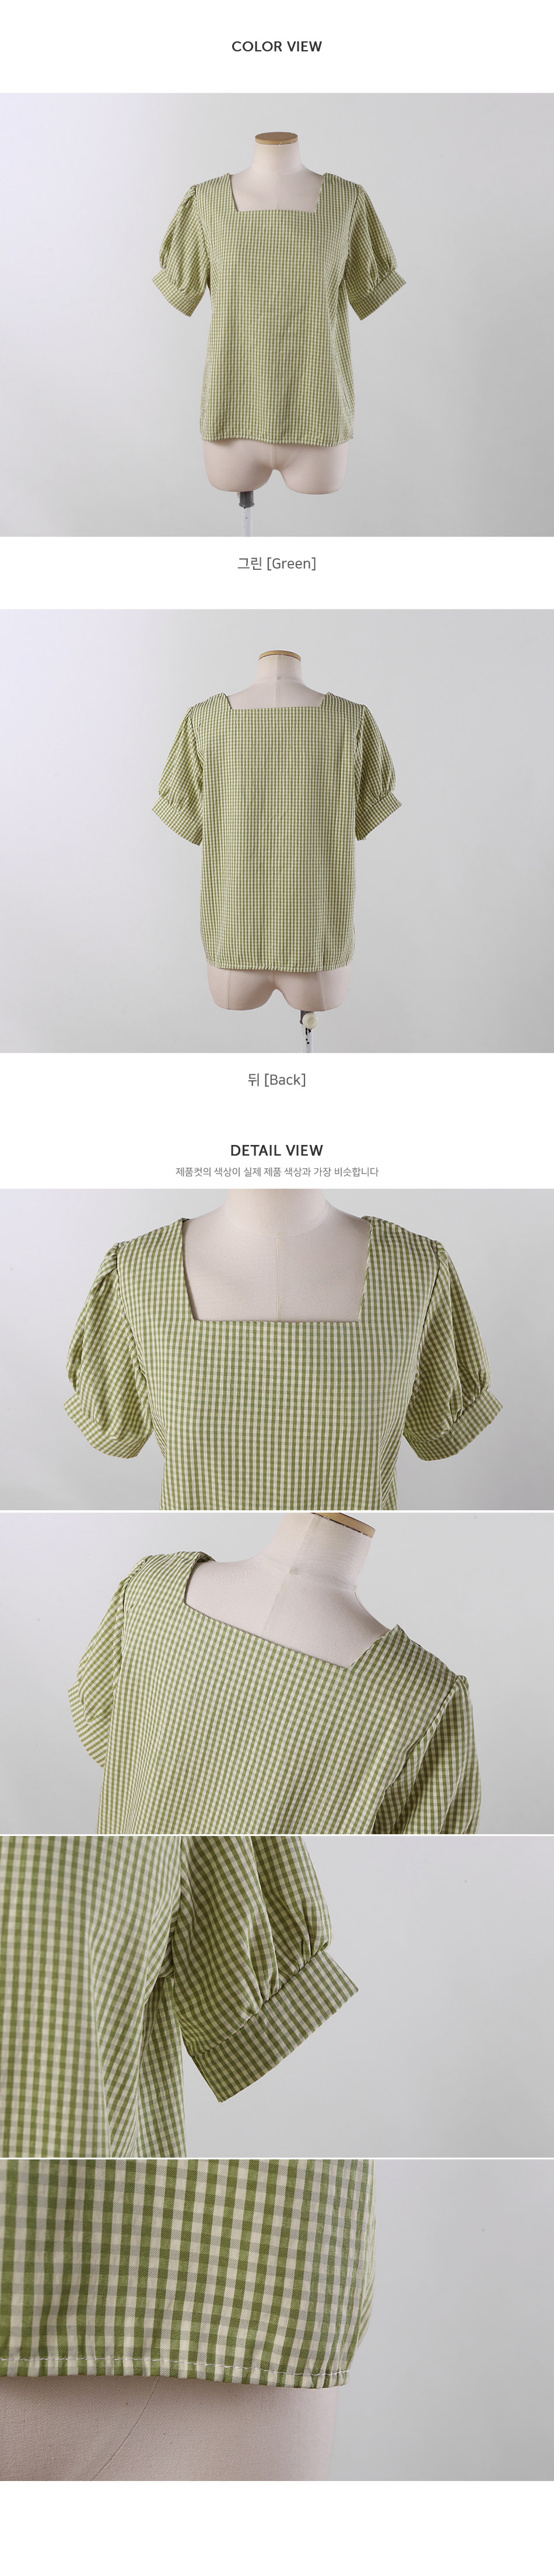 Grimming Square Check Blouse